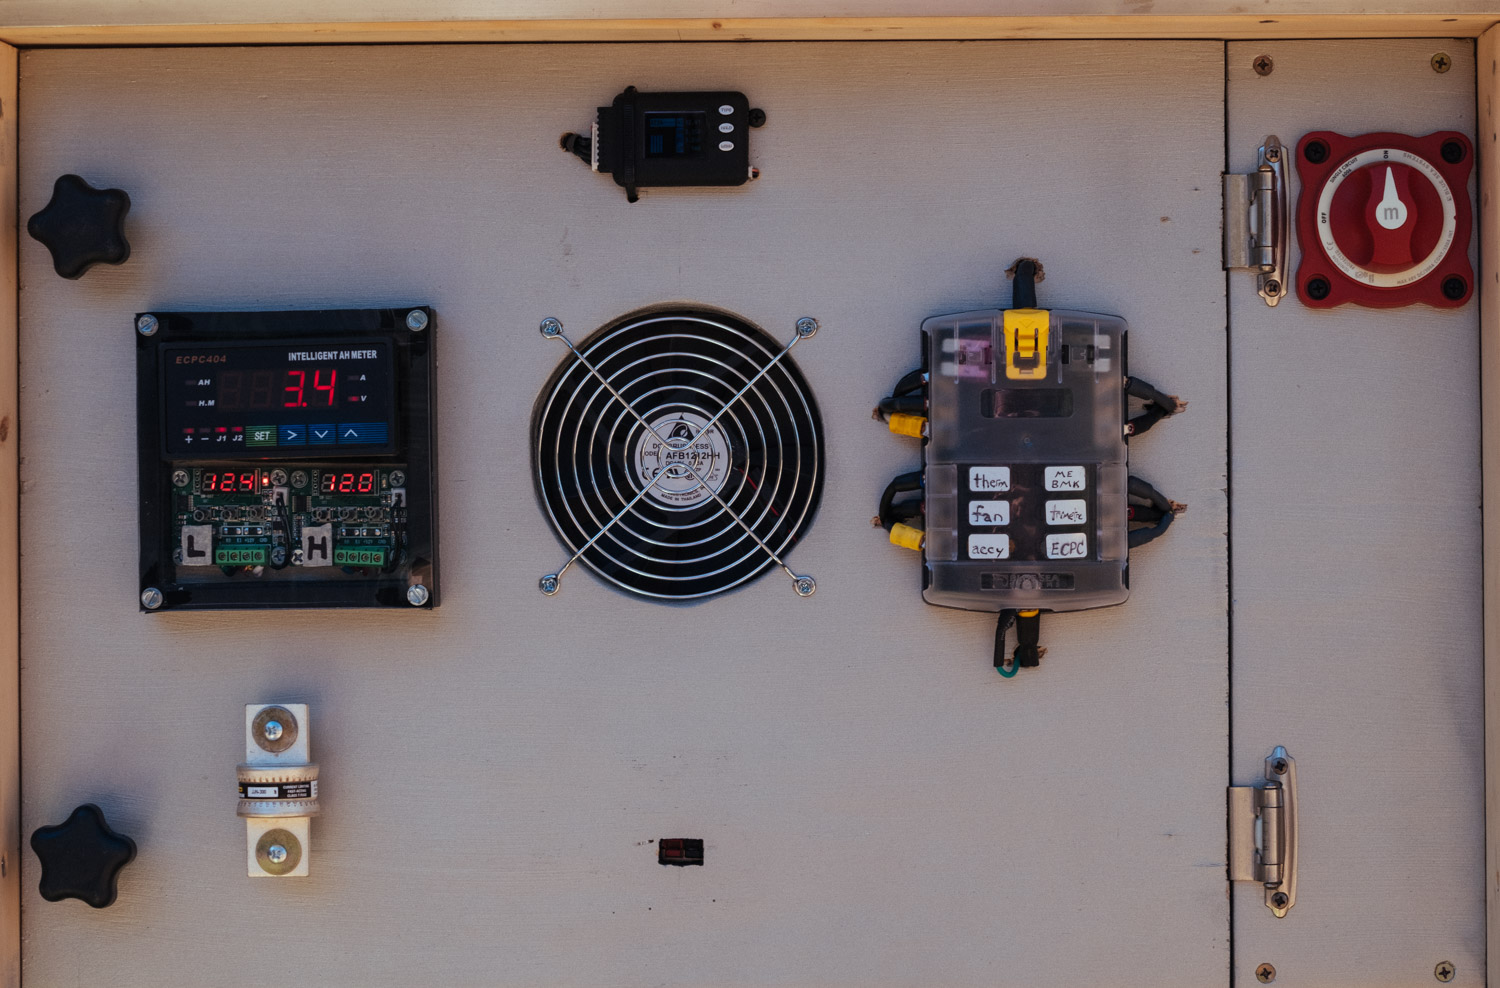 """This is the front view of the updated """"BMS panel"""" with (left to right): relay controller, thermostats, cell voltage monitor, cooling fan, fuse block, and battery disconnect switch. The spare fuse doubles as a handle."""